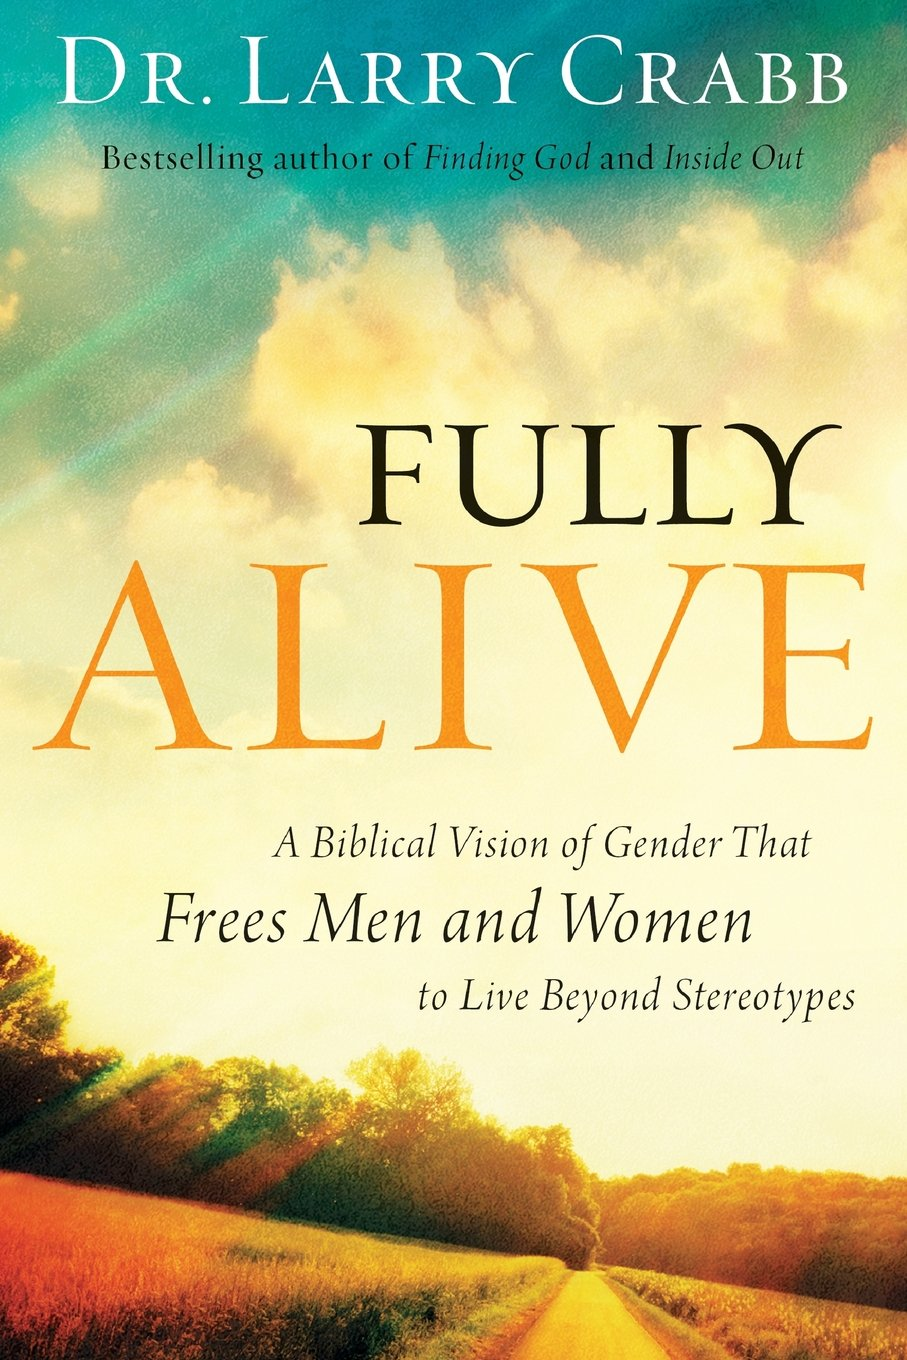 Fully Alive  A Biblical Vision Of Gender That Frees Men And Women To Live Beyond Stereotypes